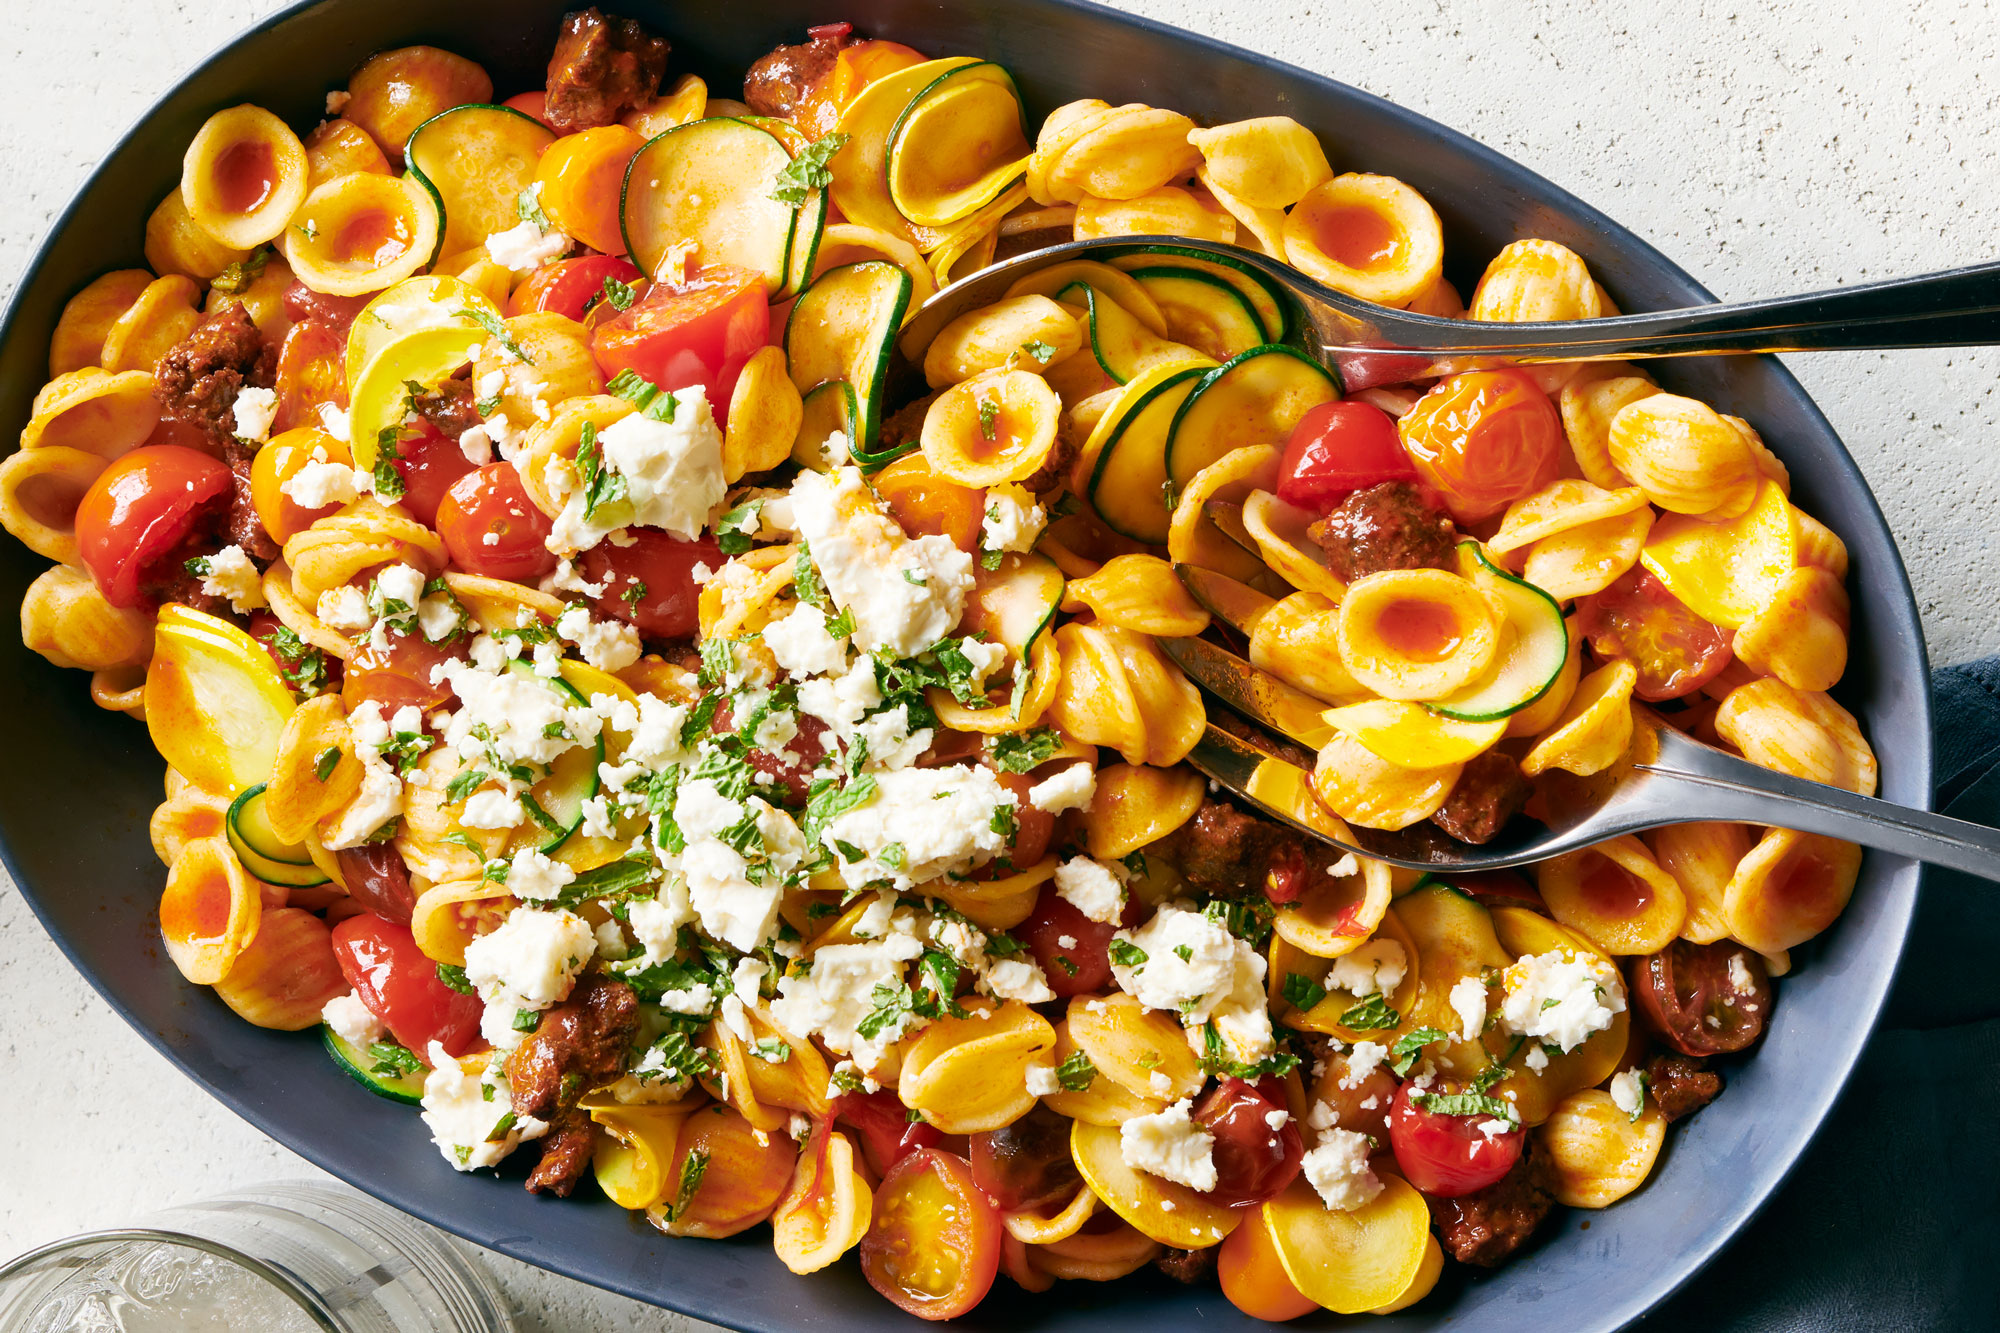 Spicy Sausage Pasta with Tomatoes and Squash